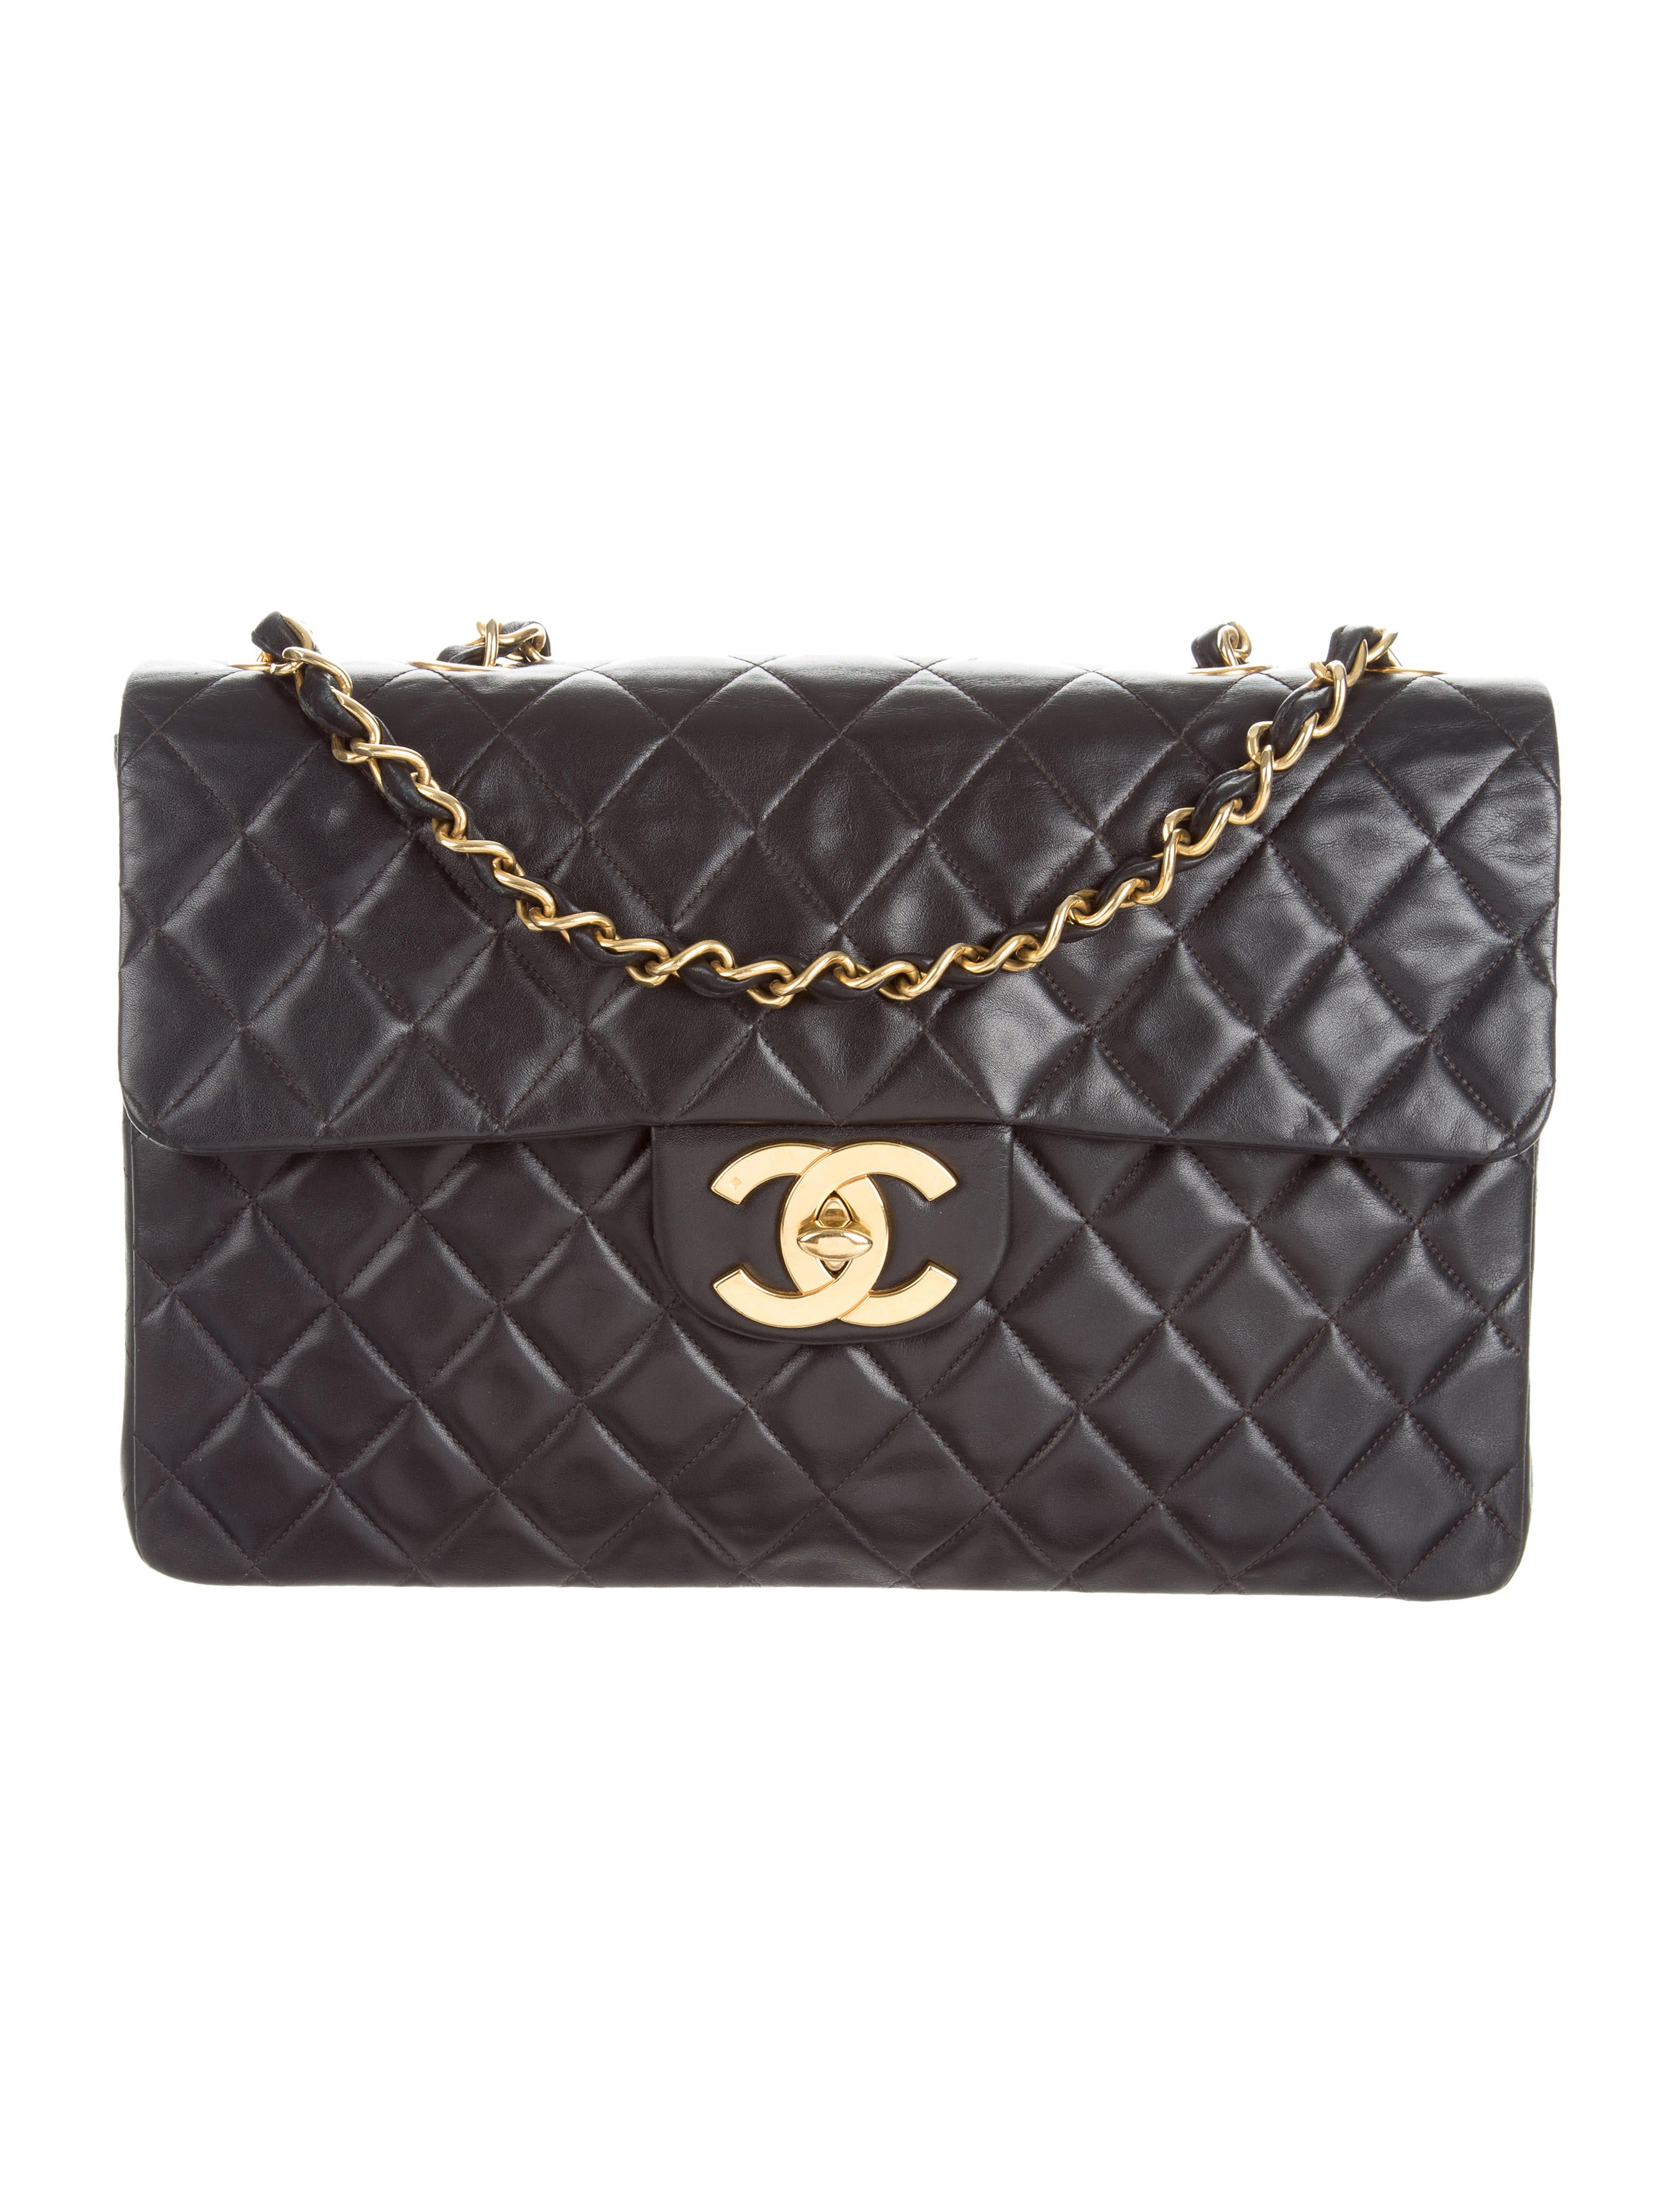 c3674cbffbc126 Chanel Maxi Bags Not On Chanel Website. Chanel Classic Maxi Single Flap Bag  ...